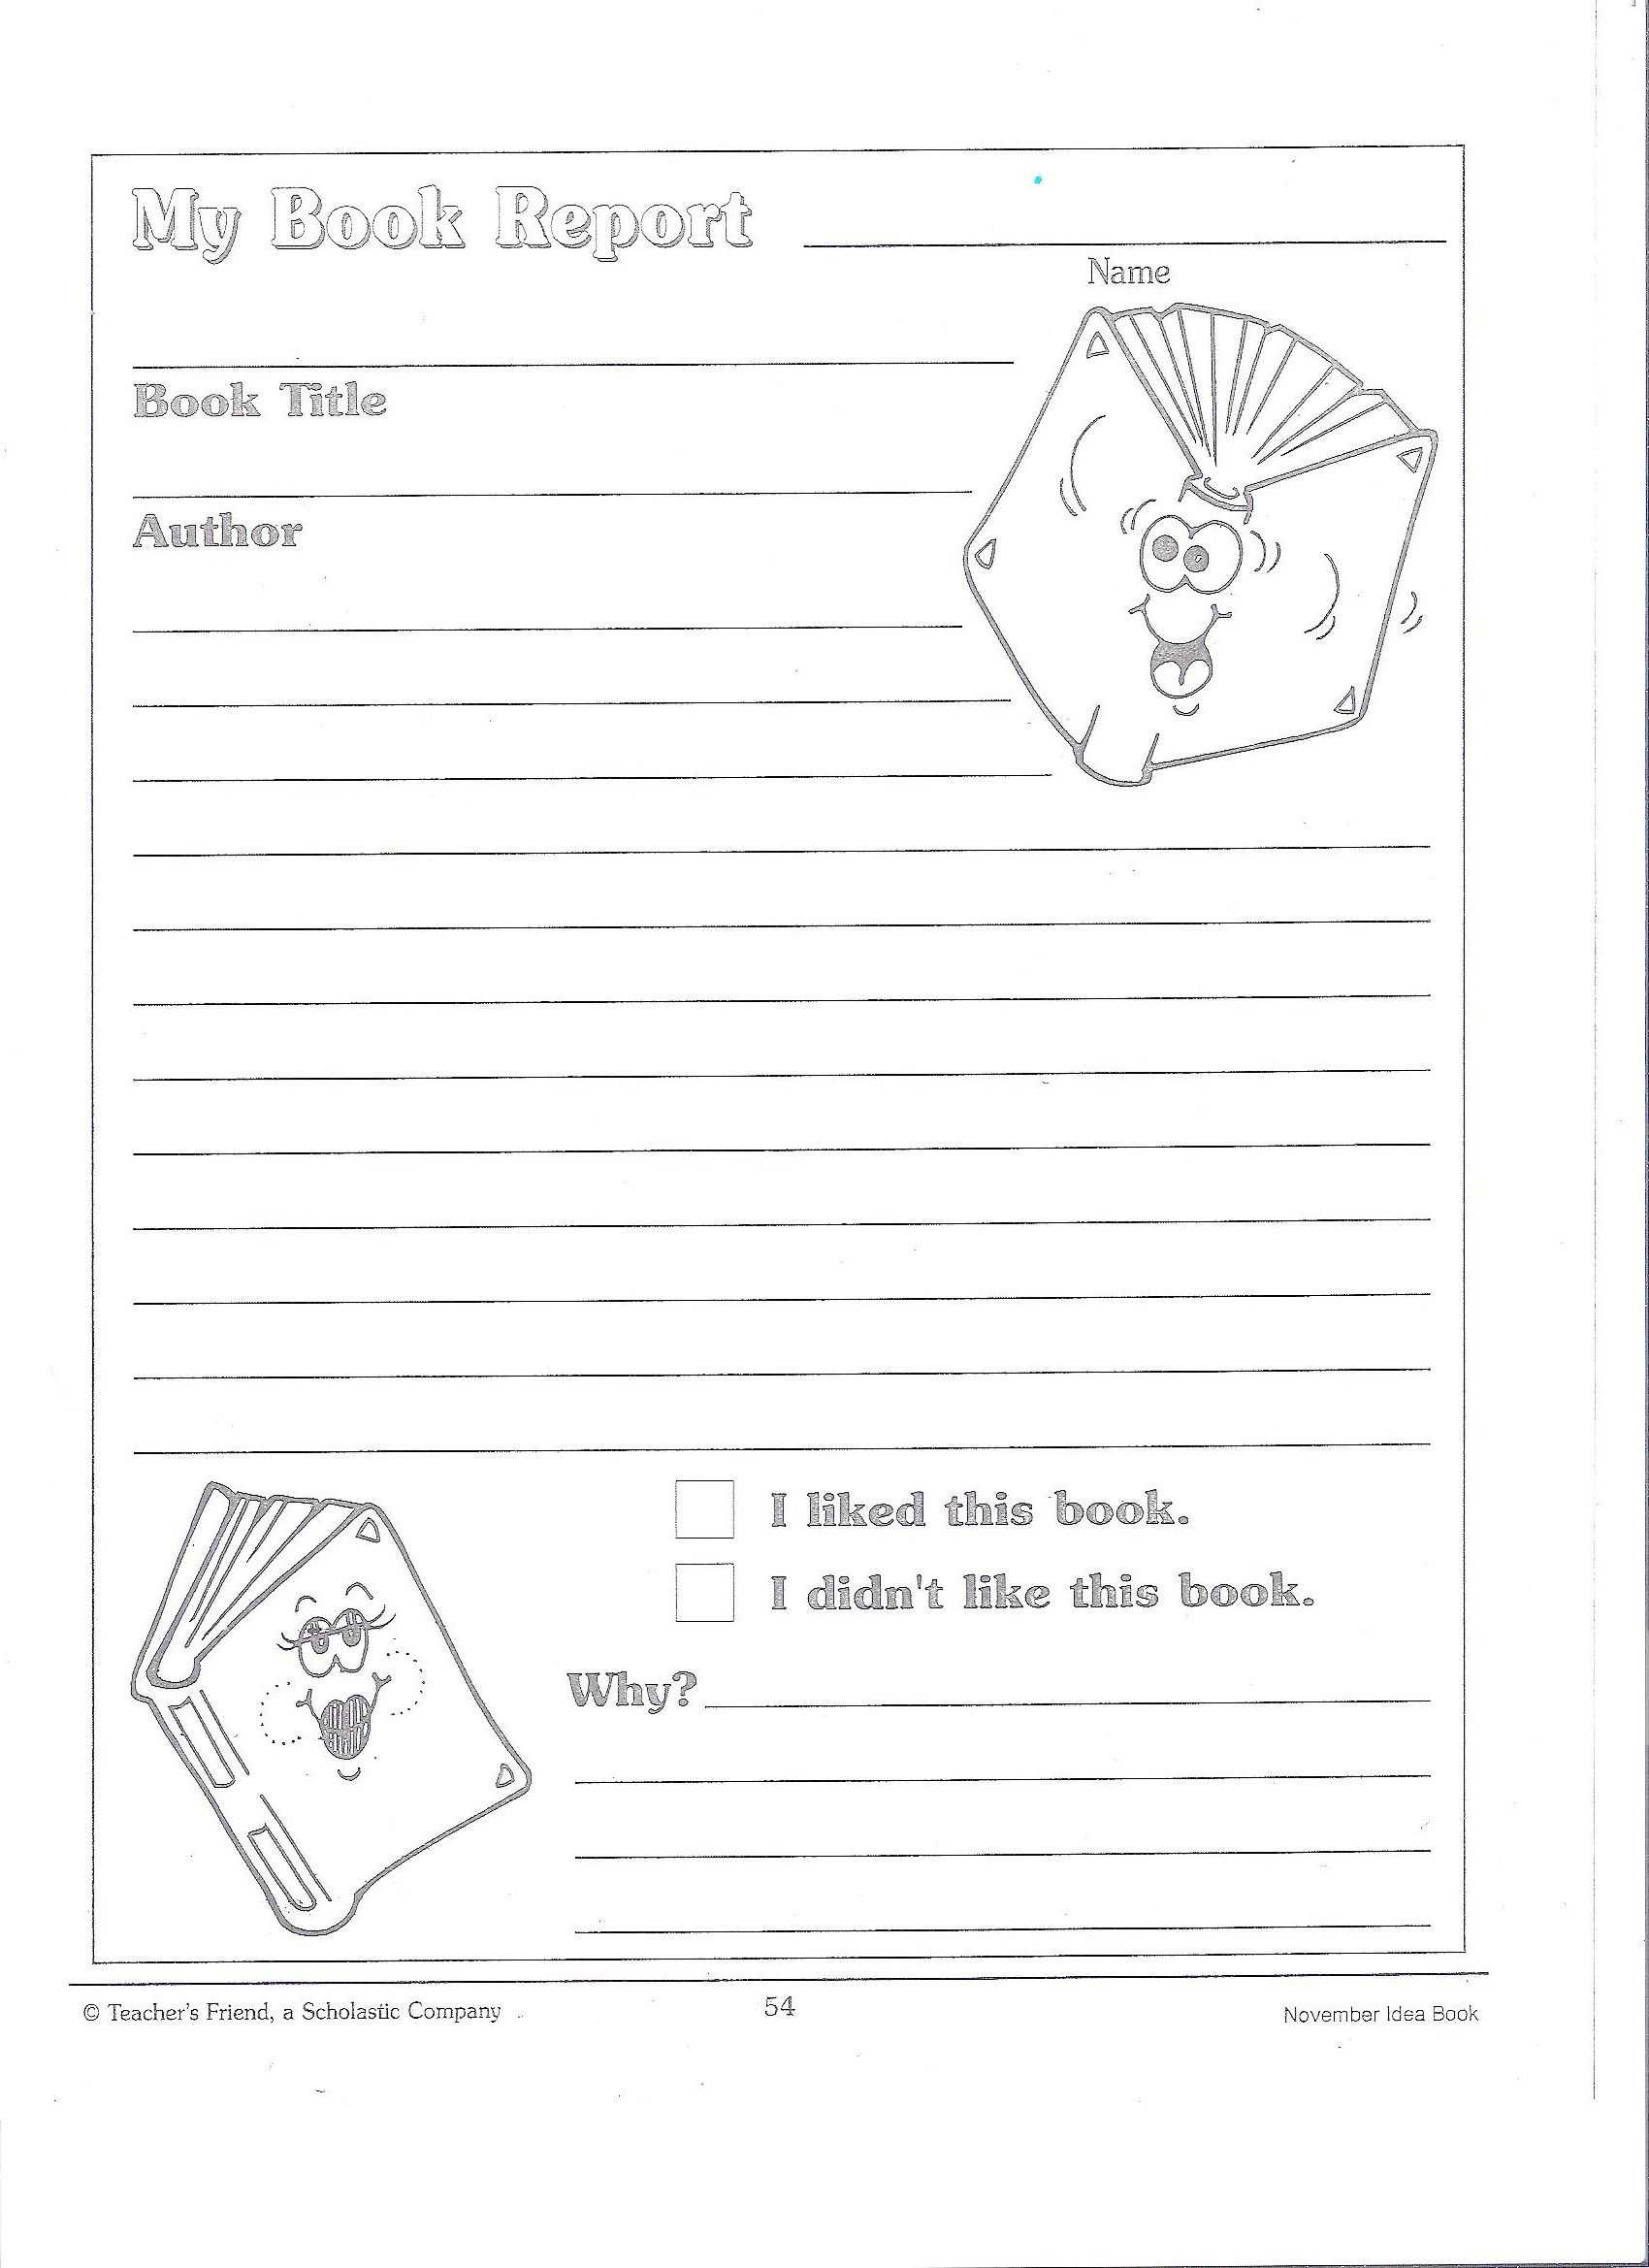 Printable Book Report Forms | Miss Murphy's 1St And 2Nd With 1St Grade Book Report Template